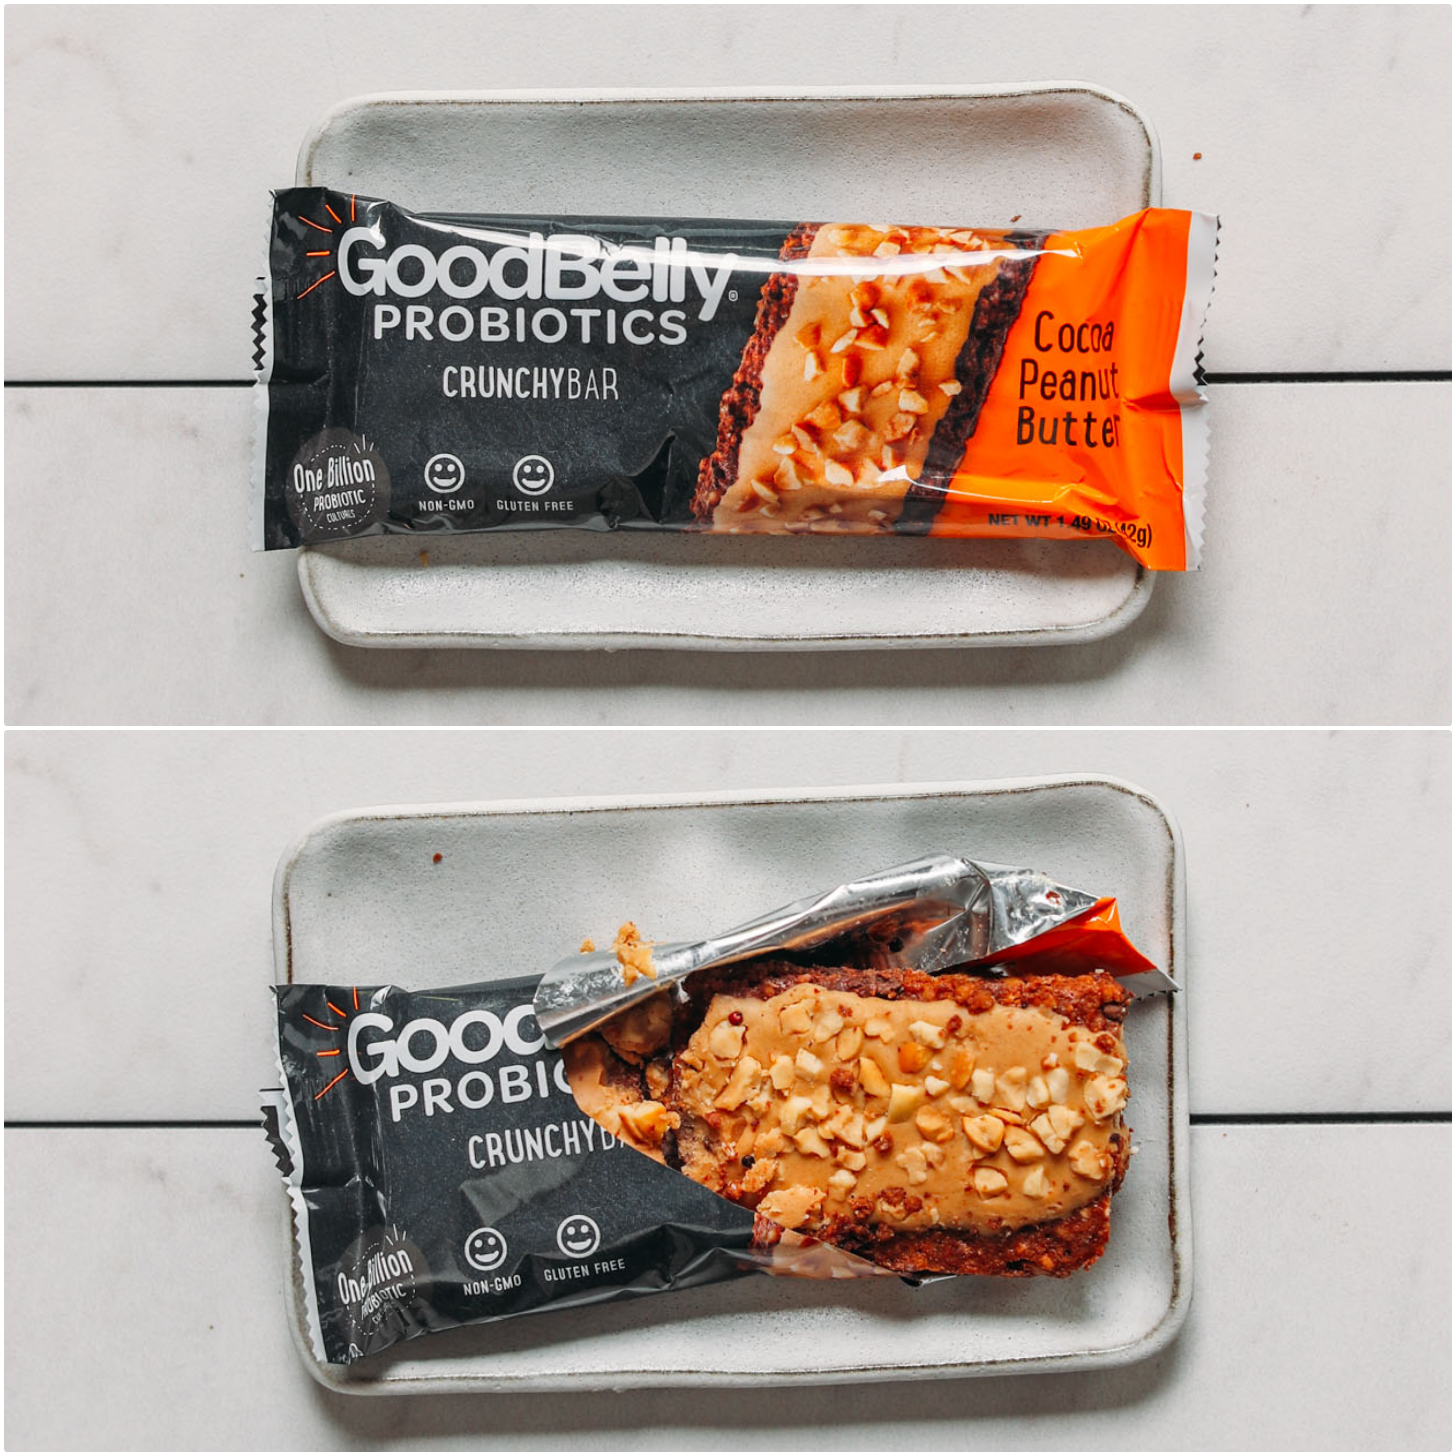 Open and closed package of a Goodbelly Probiotic protein bar for our review of plant-based protein bars